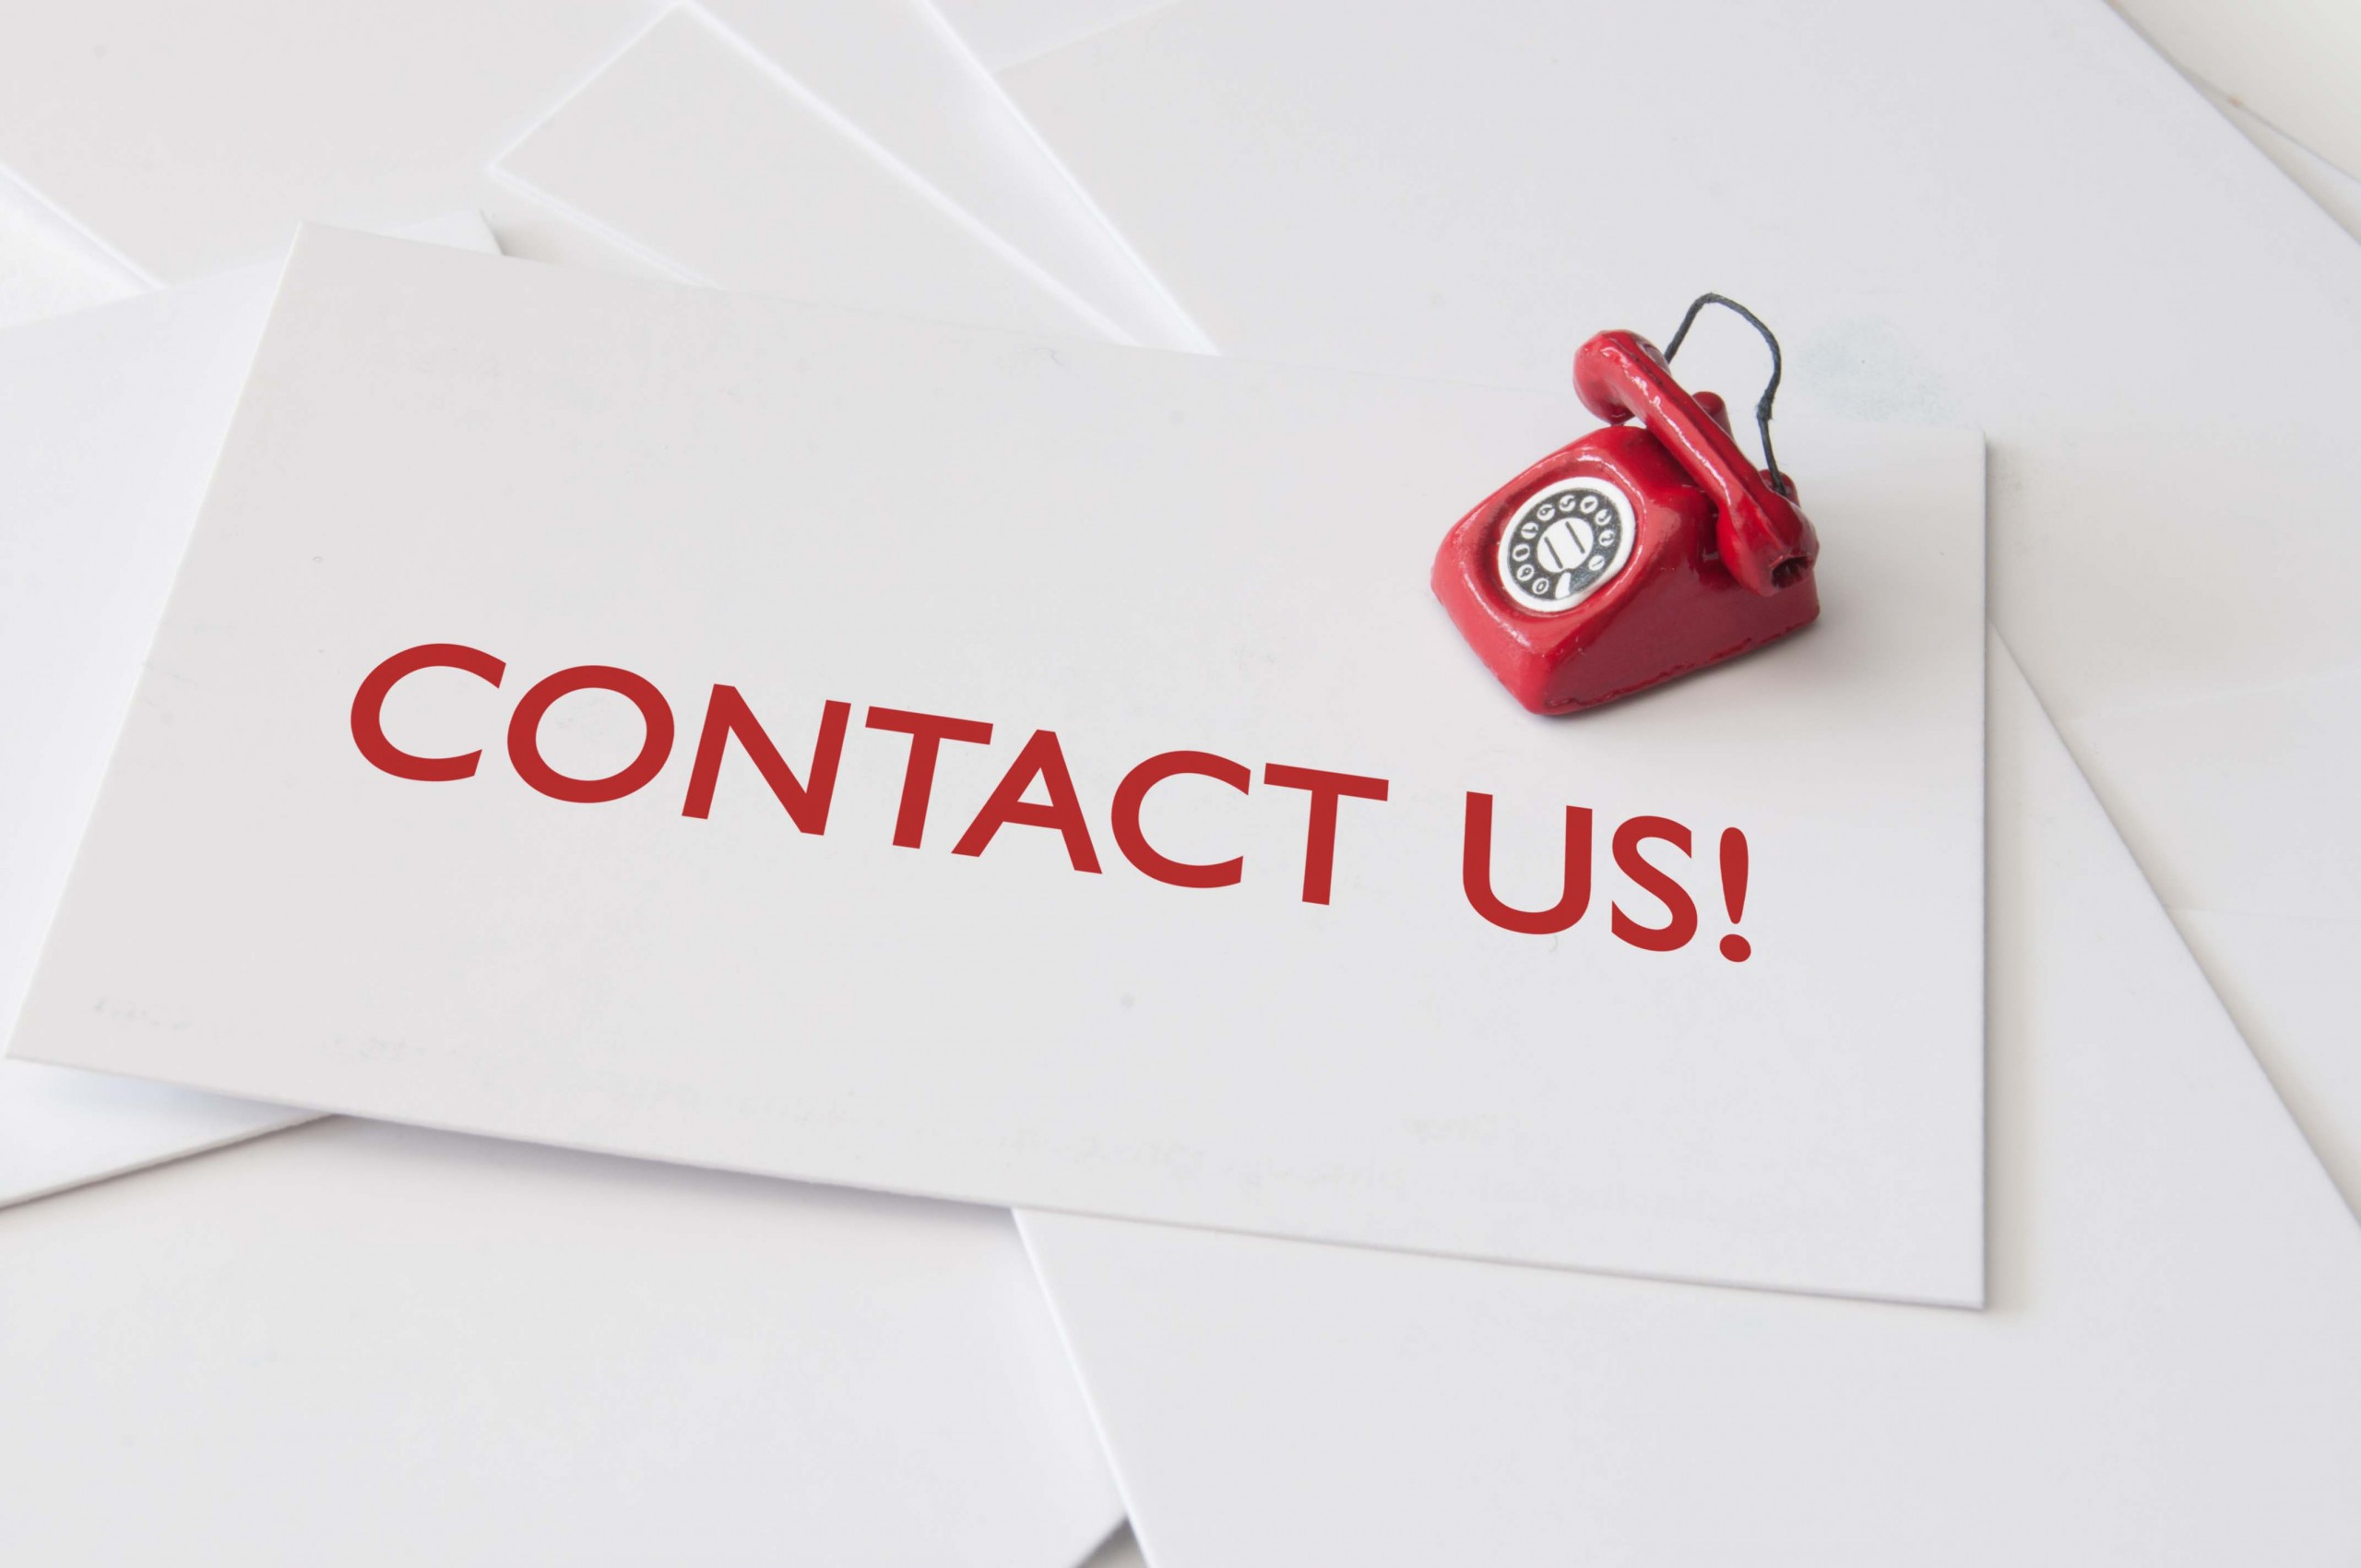 Contact us card with miniature telephone